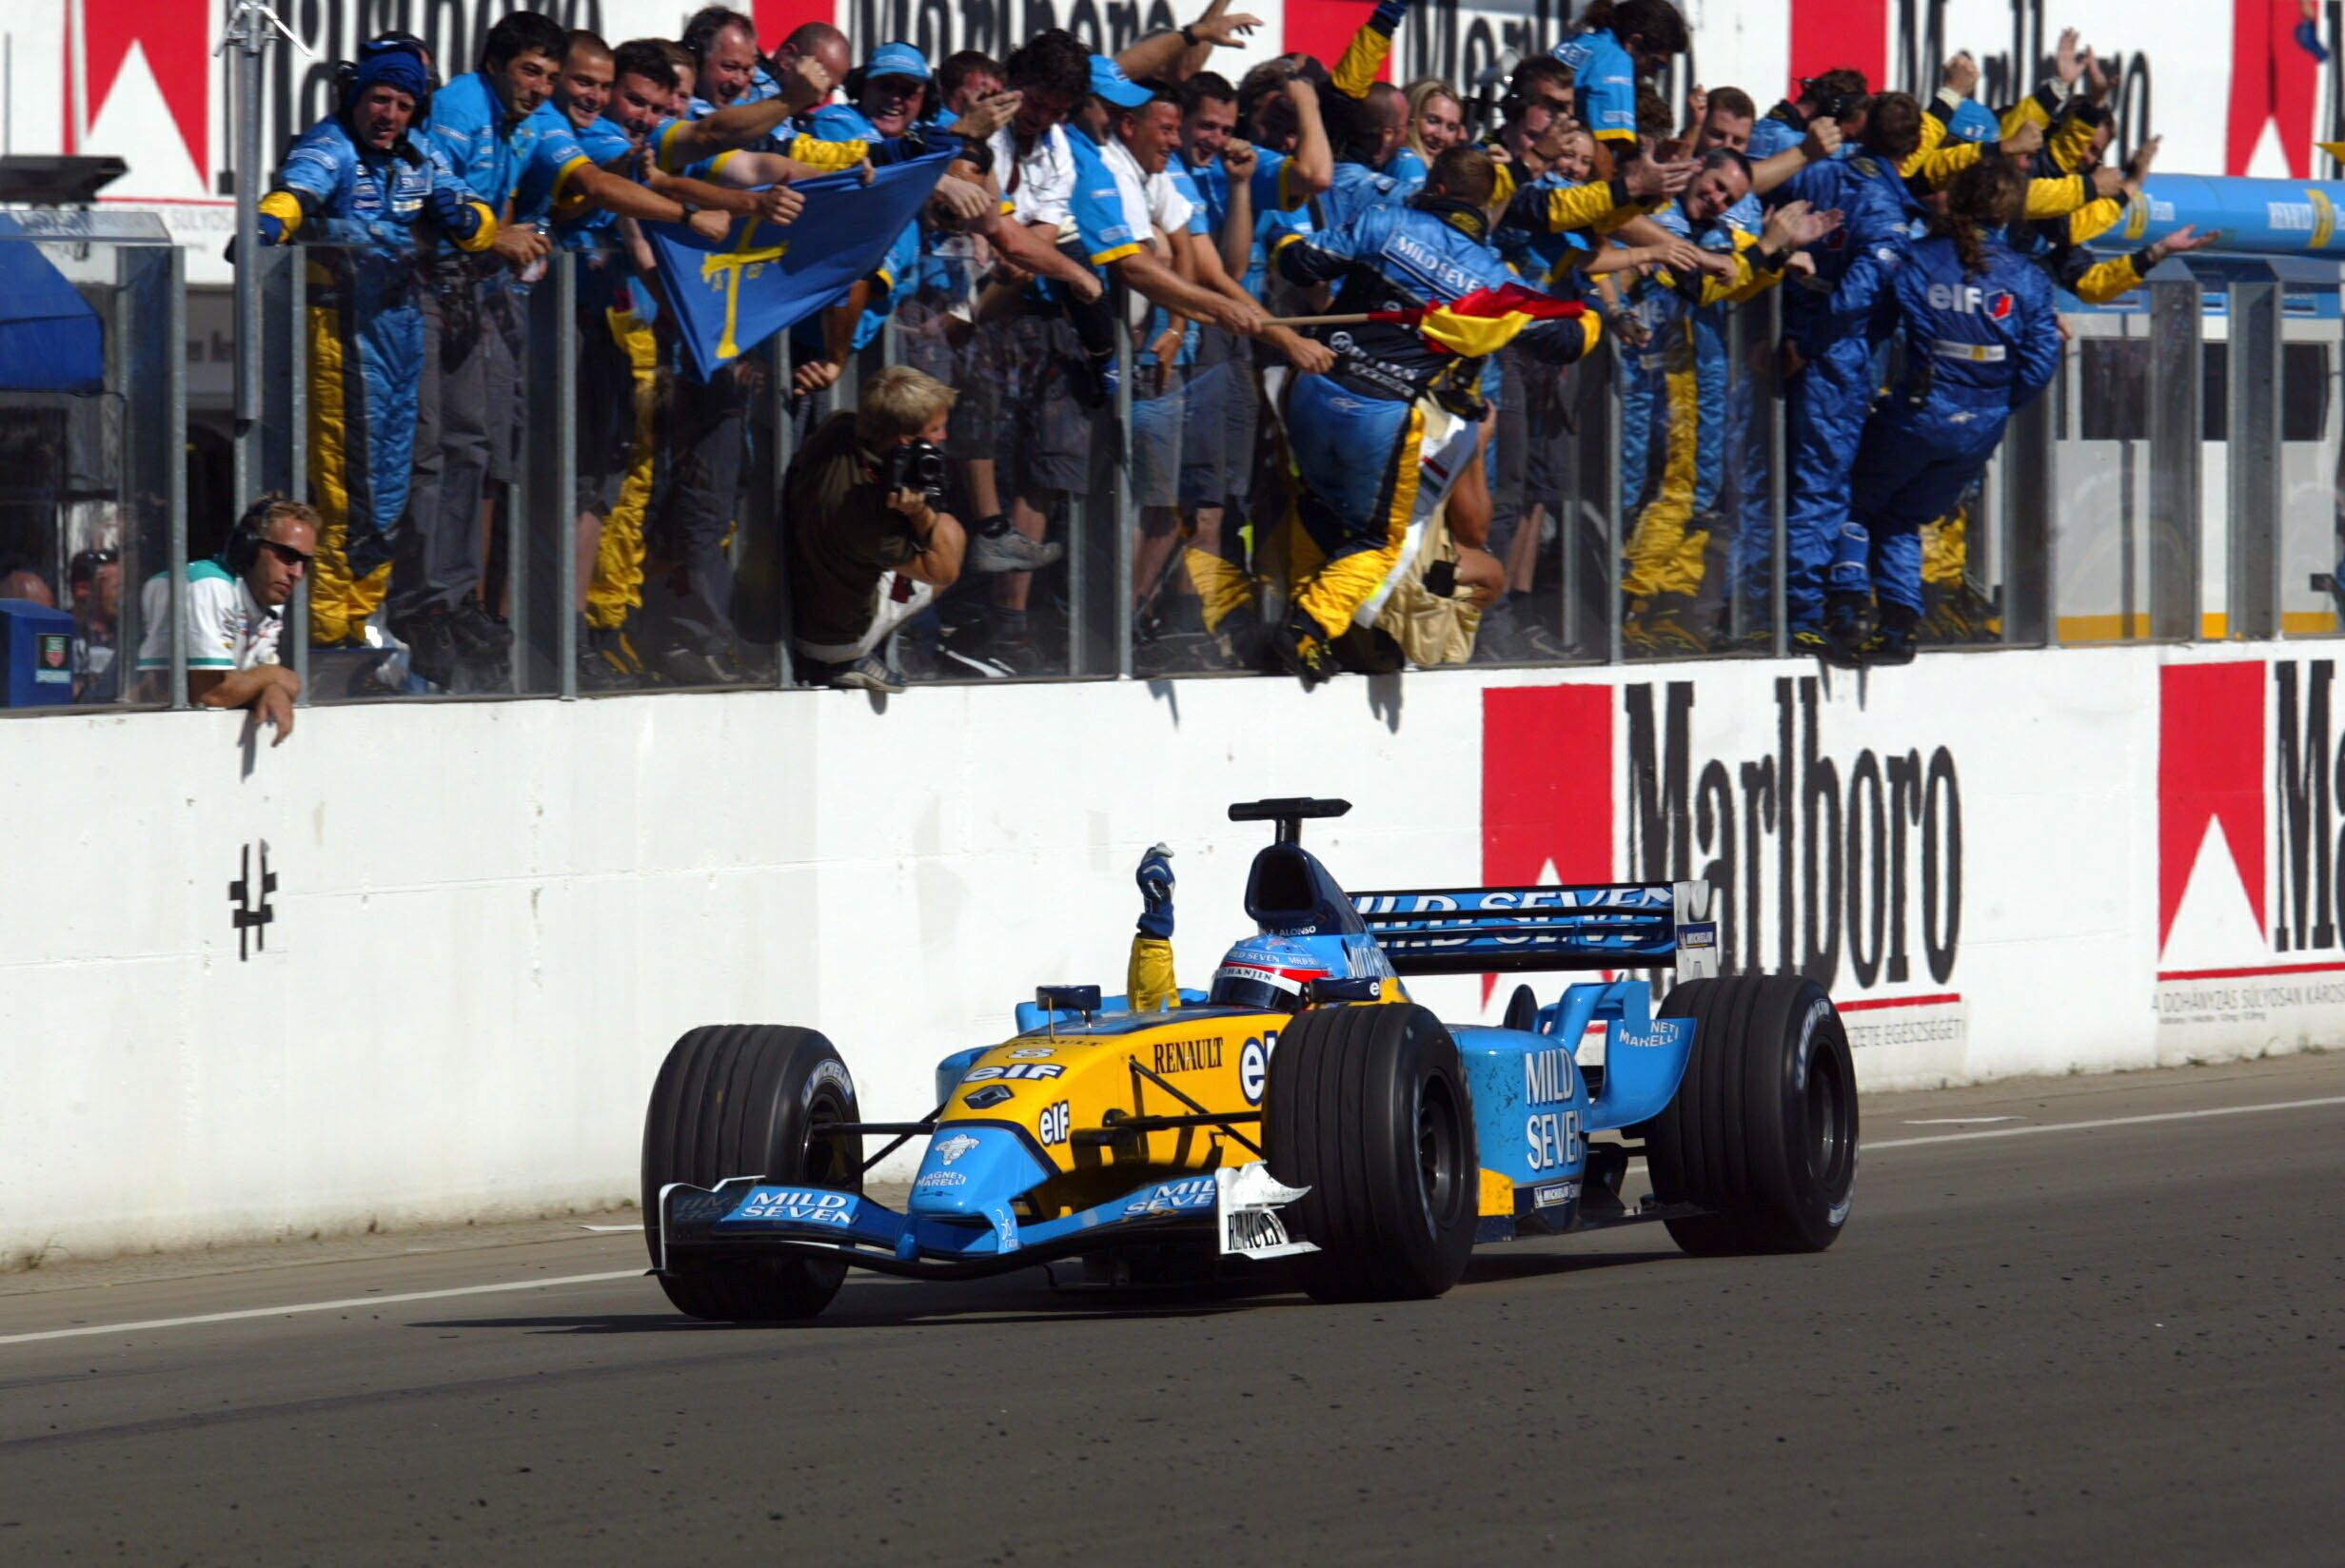 4 Drivers Who Took Their 1st Win At The Hungarian Grand Prix